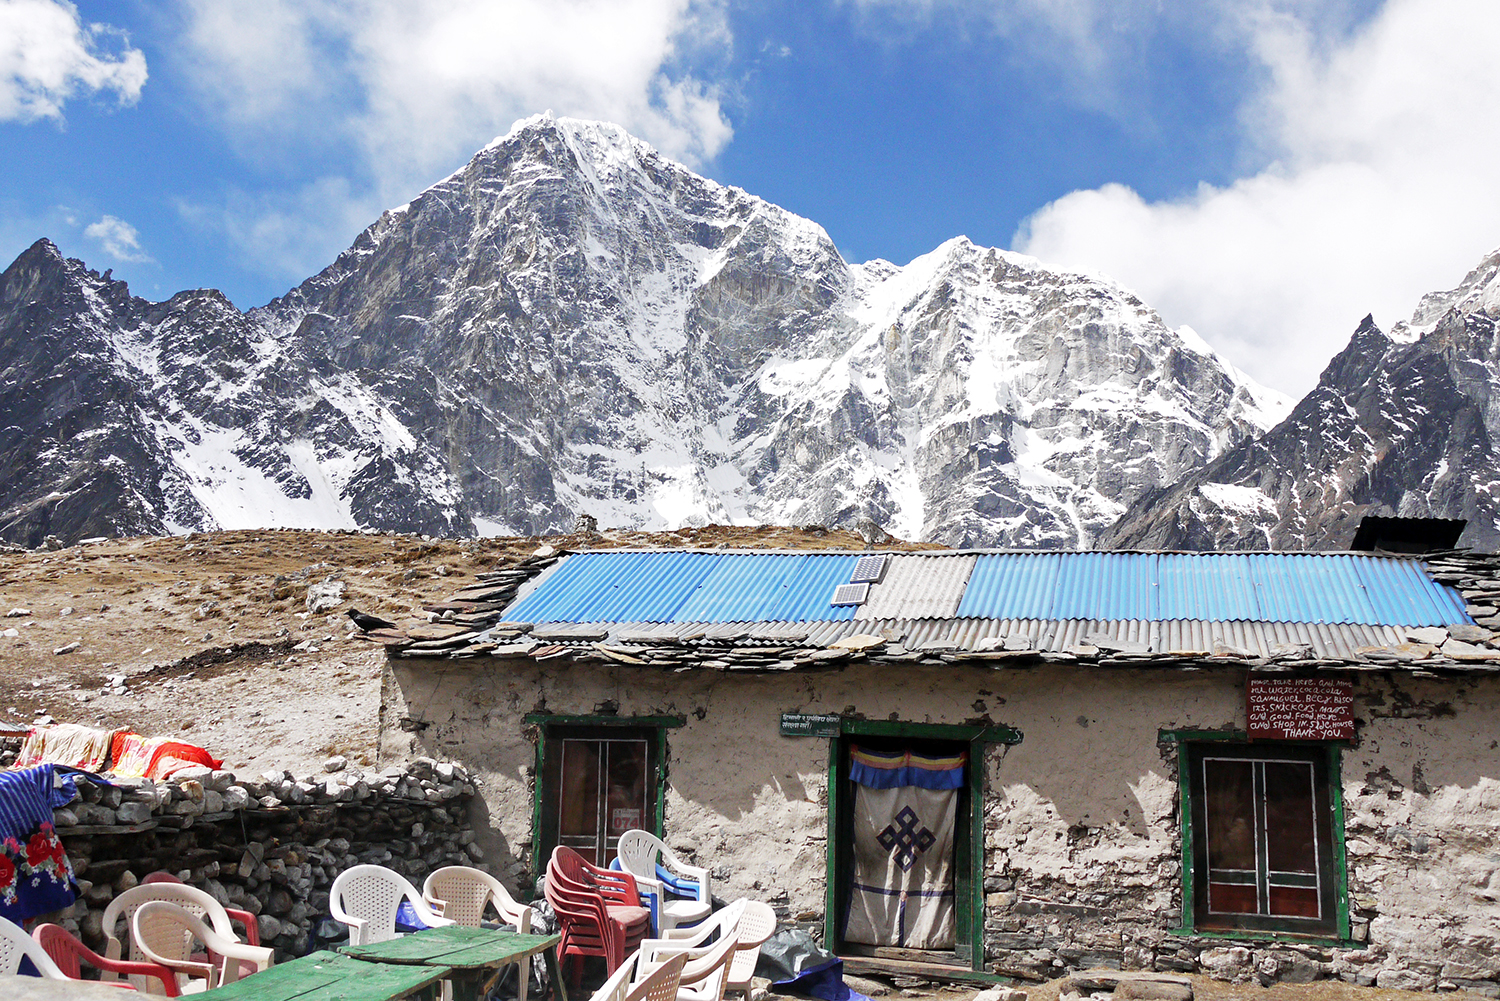 A simple home high in the Himalayas